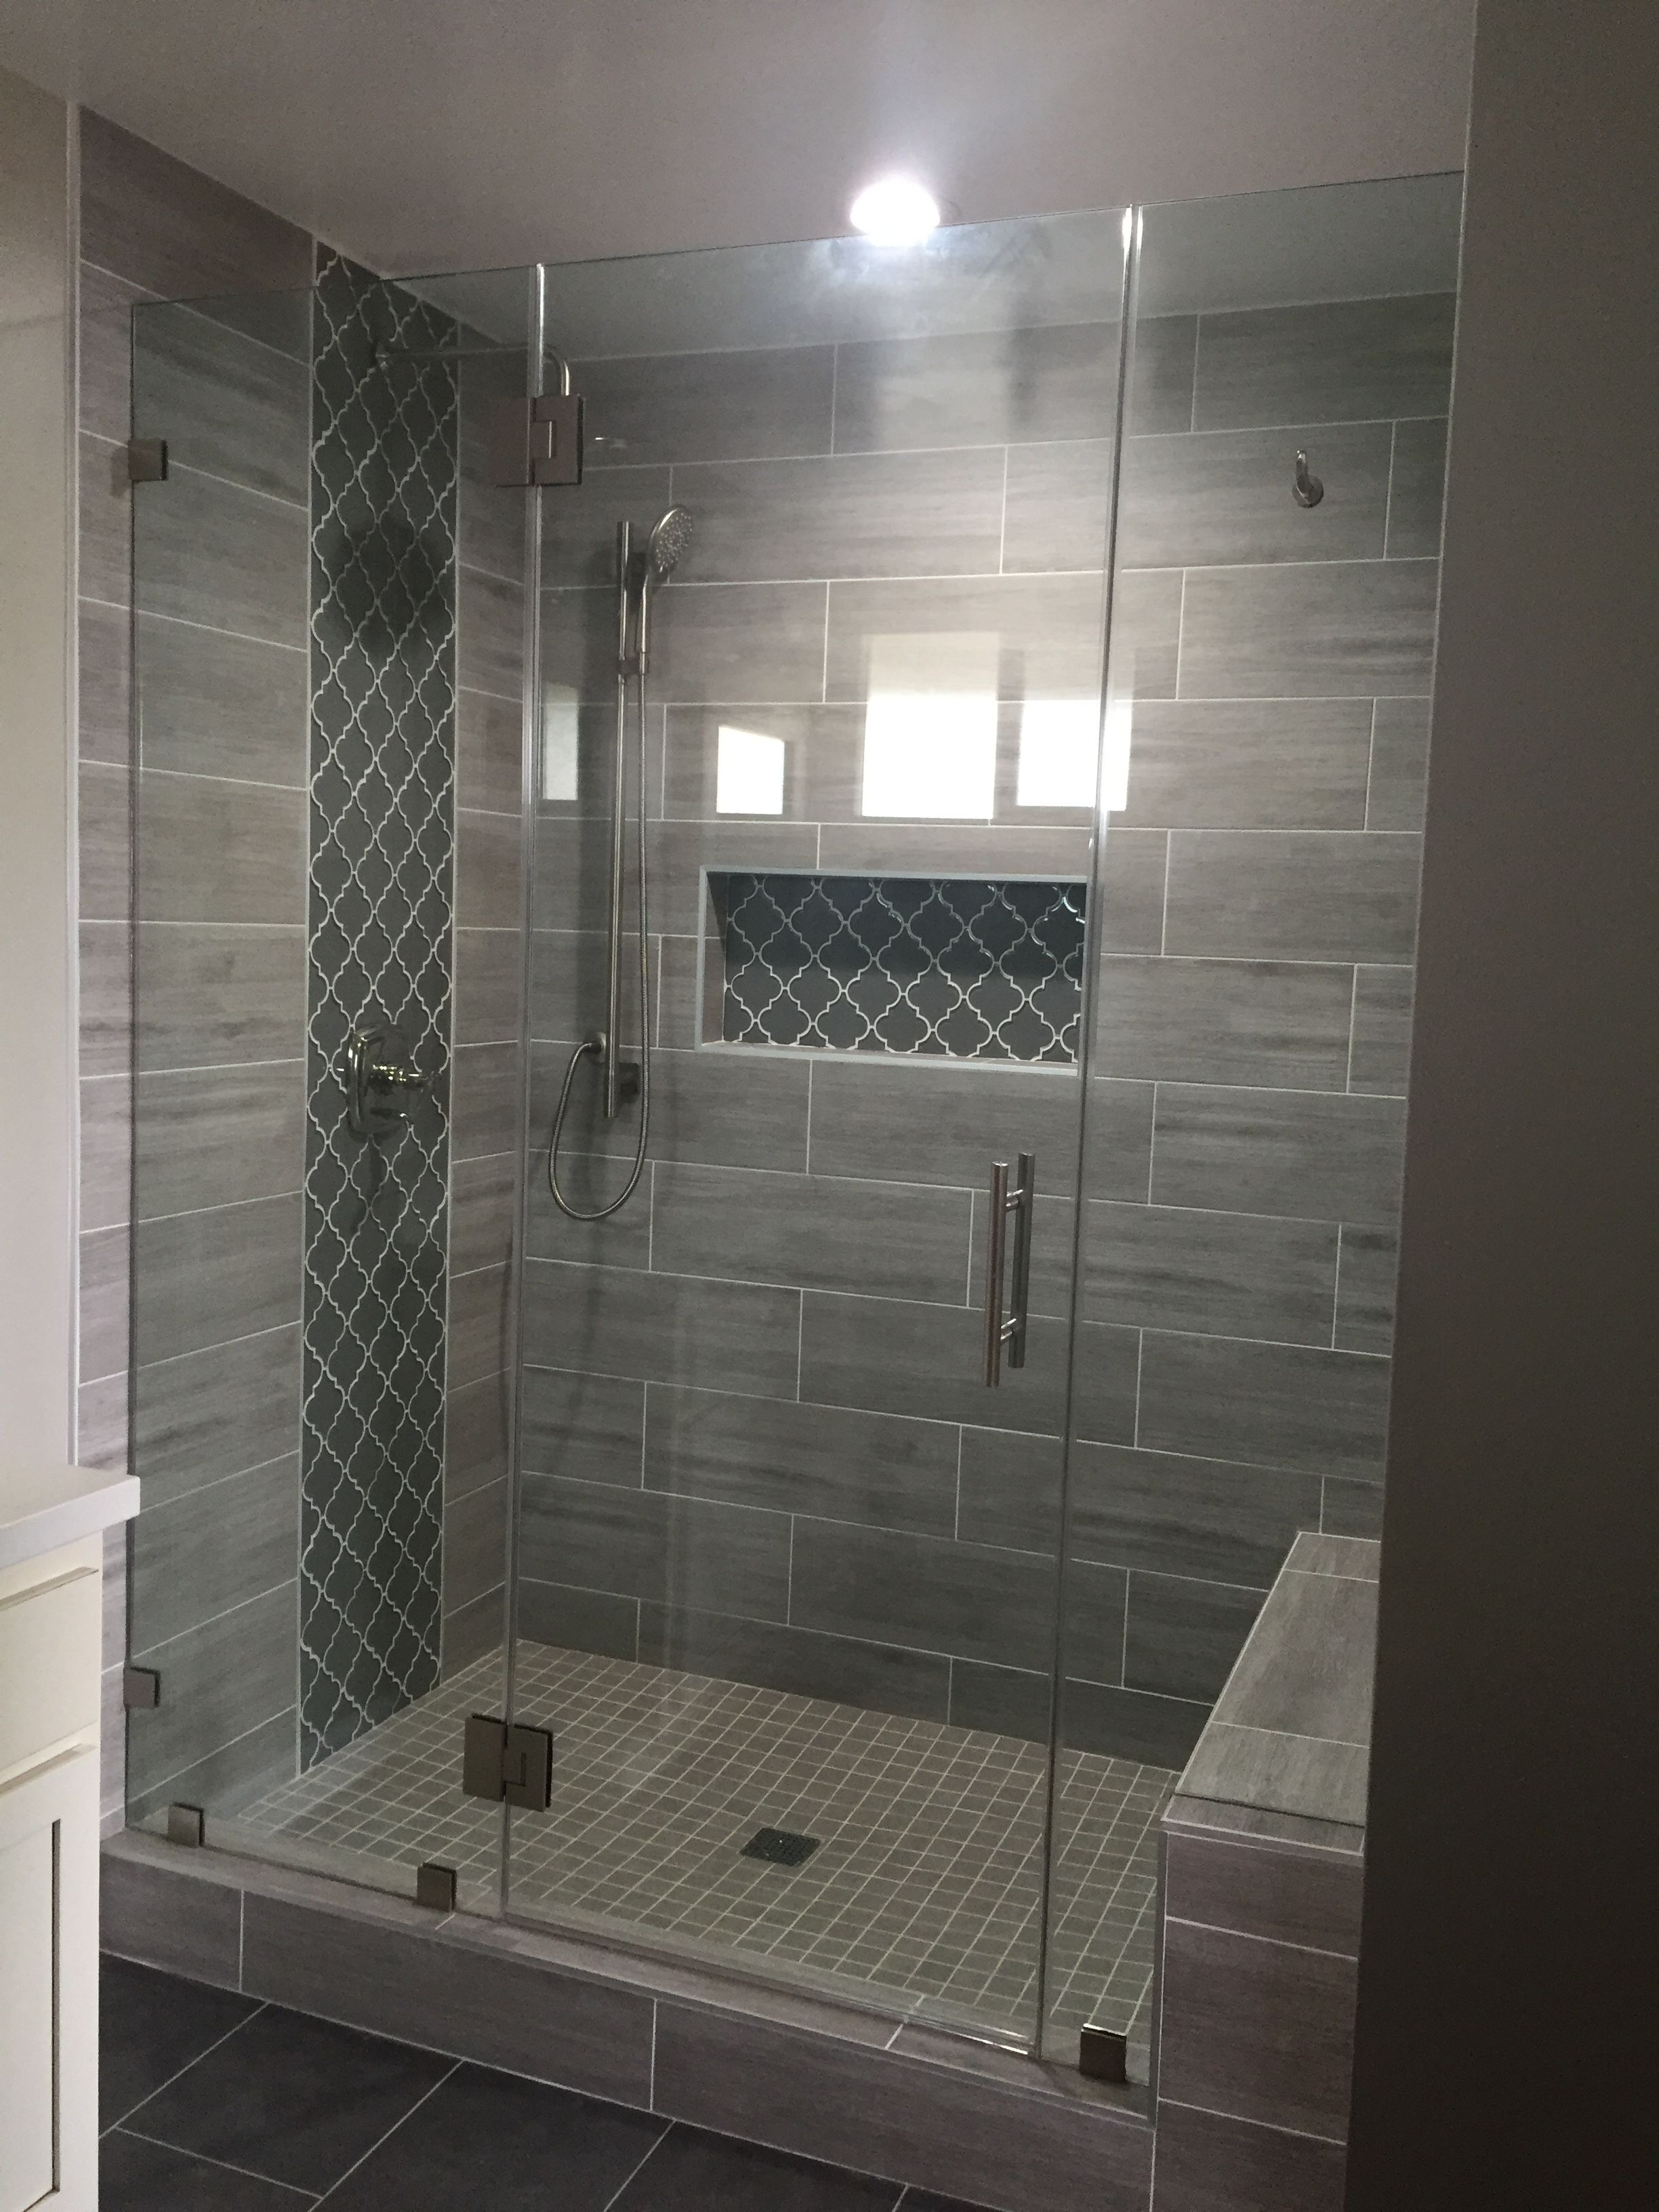 Finished Updated Walk In Shower With Glass Door Arabesque